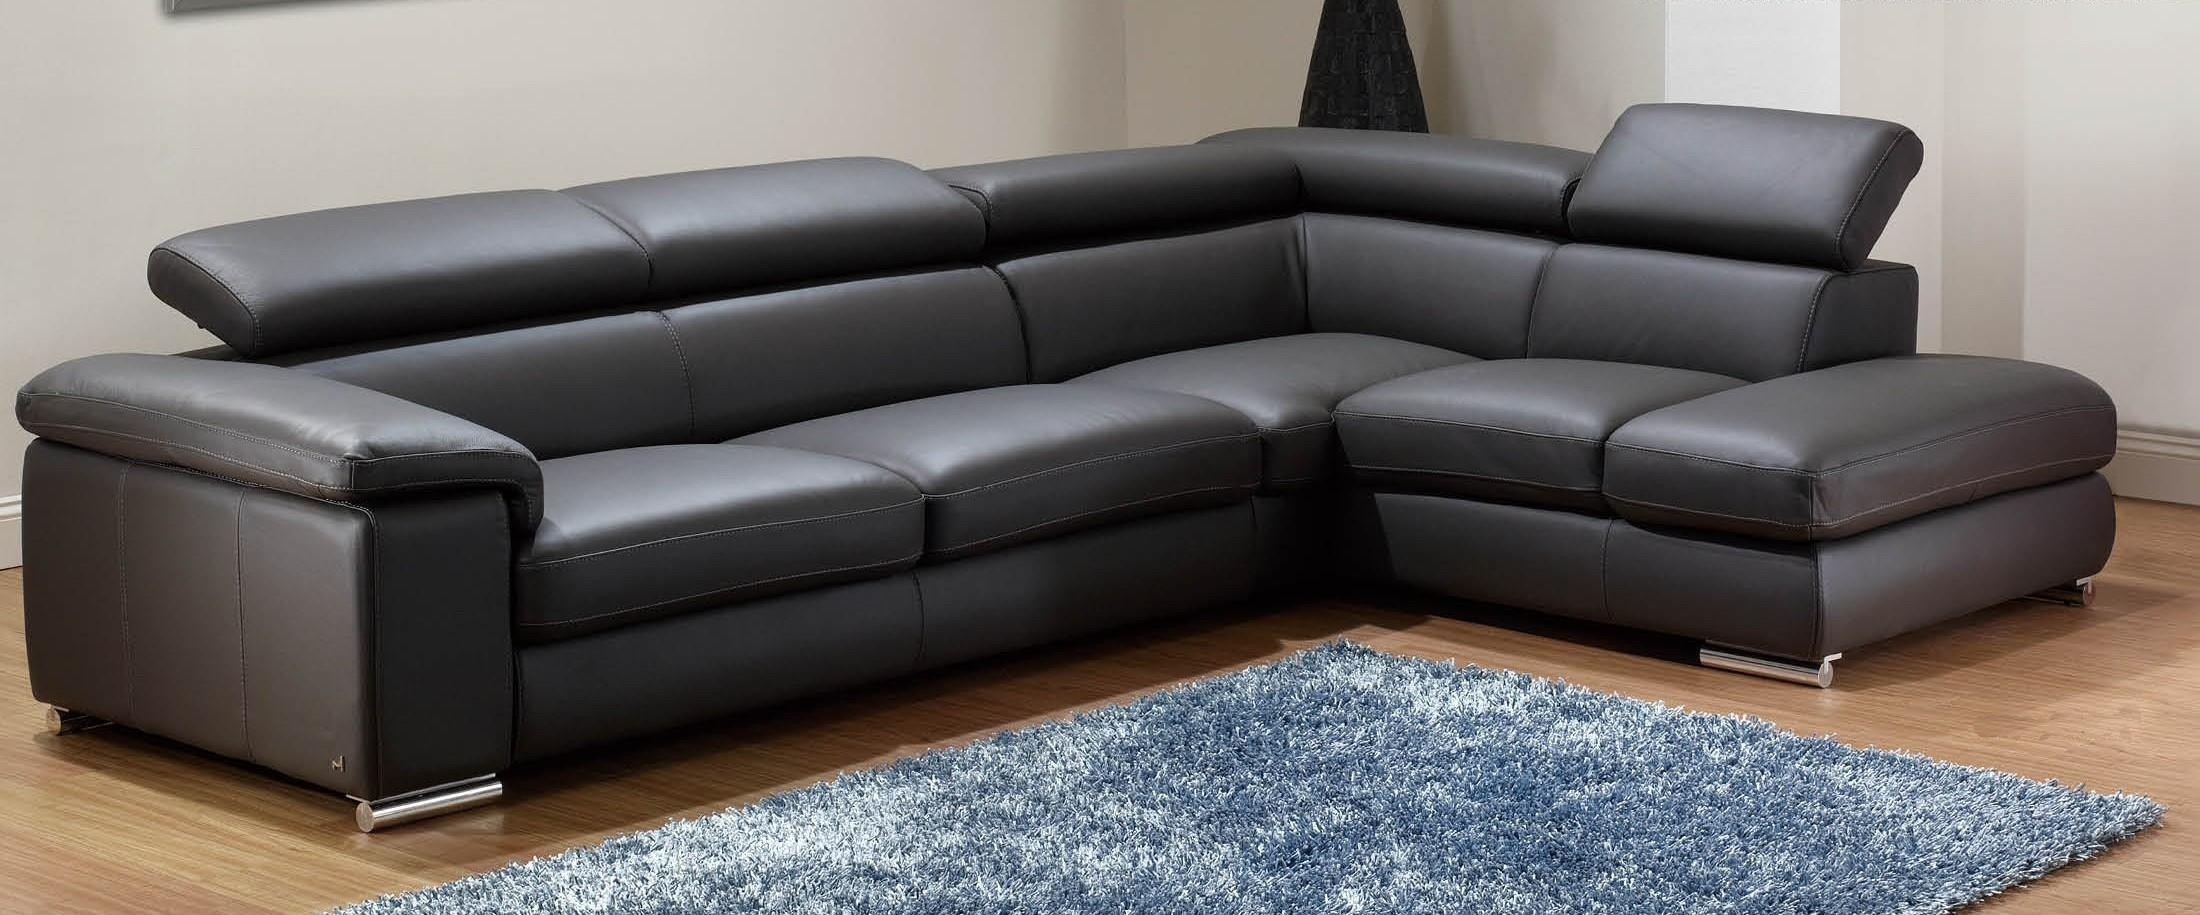 Sectional Sofa Design : Sectional Sofas Near Me Short Silver Feet With Short Sectional Sofas (Image 10 of 20)